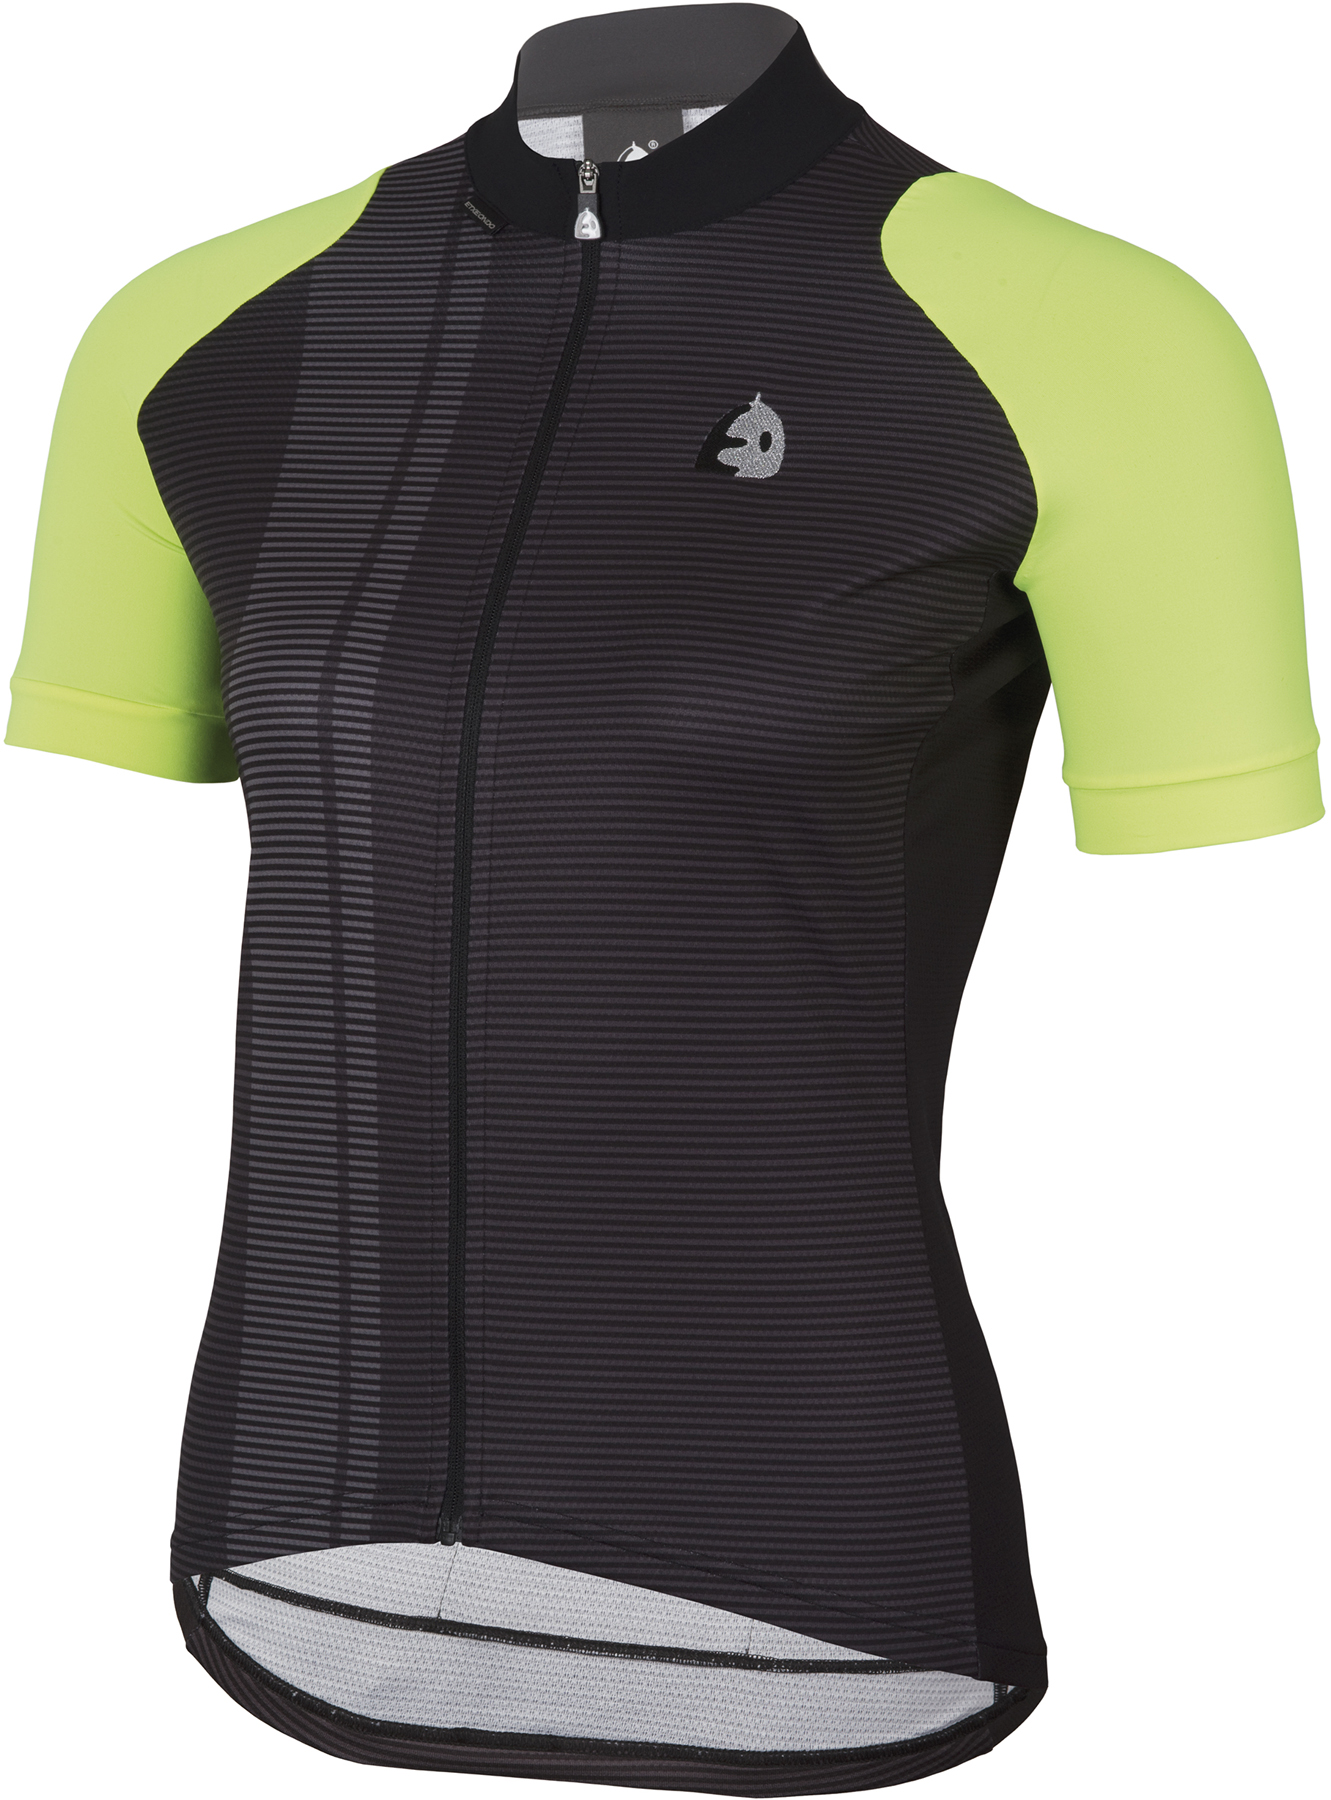 Etxeondo Women's Nere Short Sleeve Jersey | Jerseys